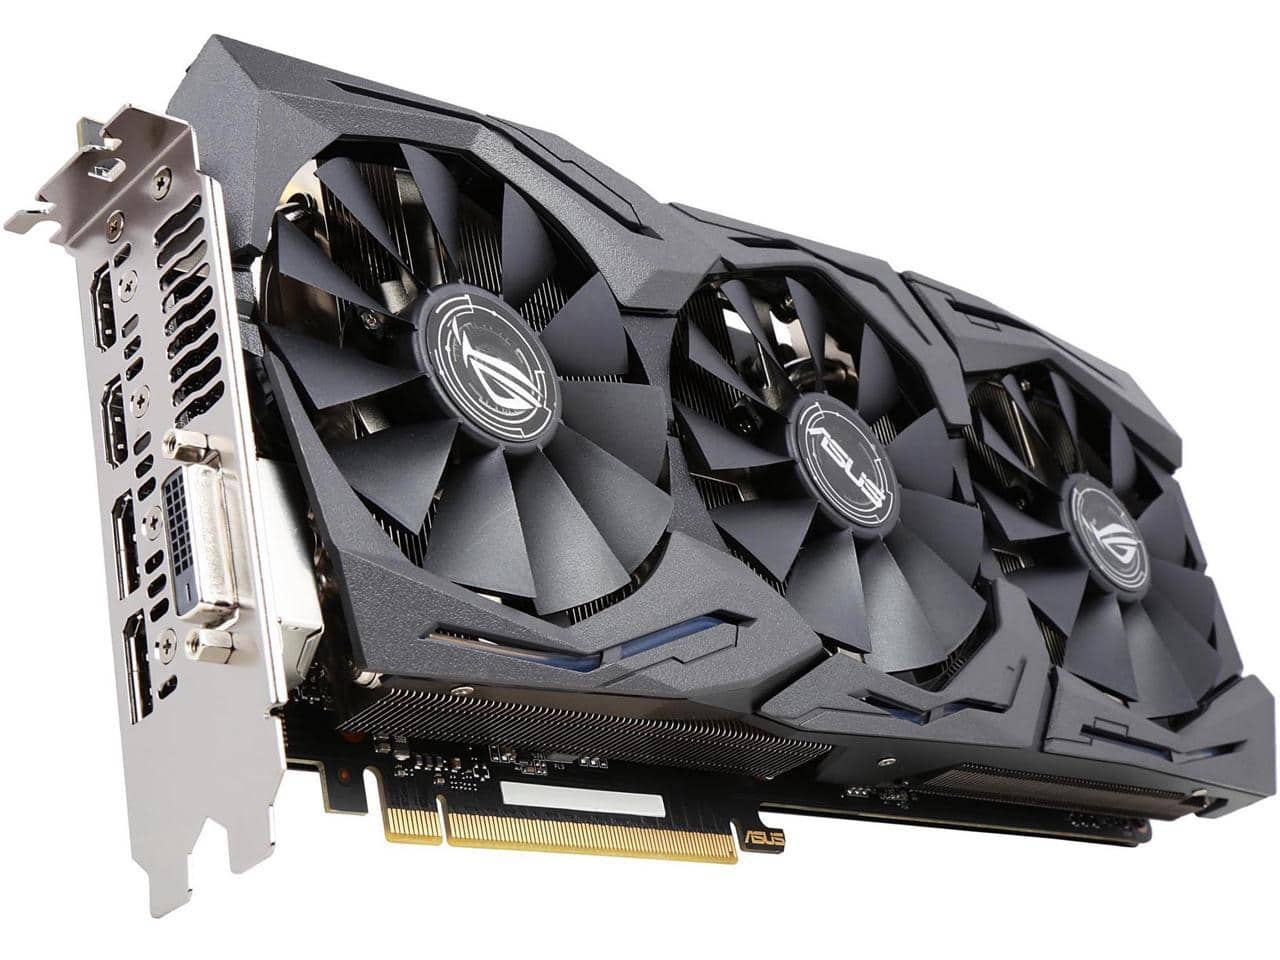 ASUS ROG GeForce GTX 1080 GAMING 8GB GDDR5X 1835 Mhz  Video Card $579.99